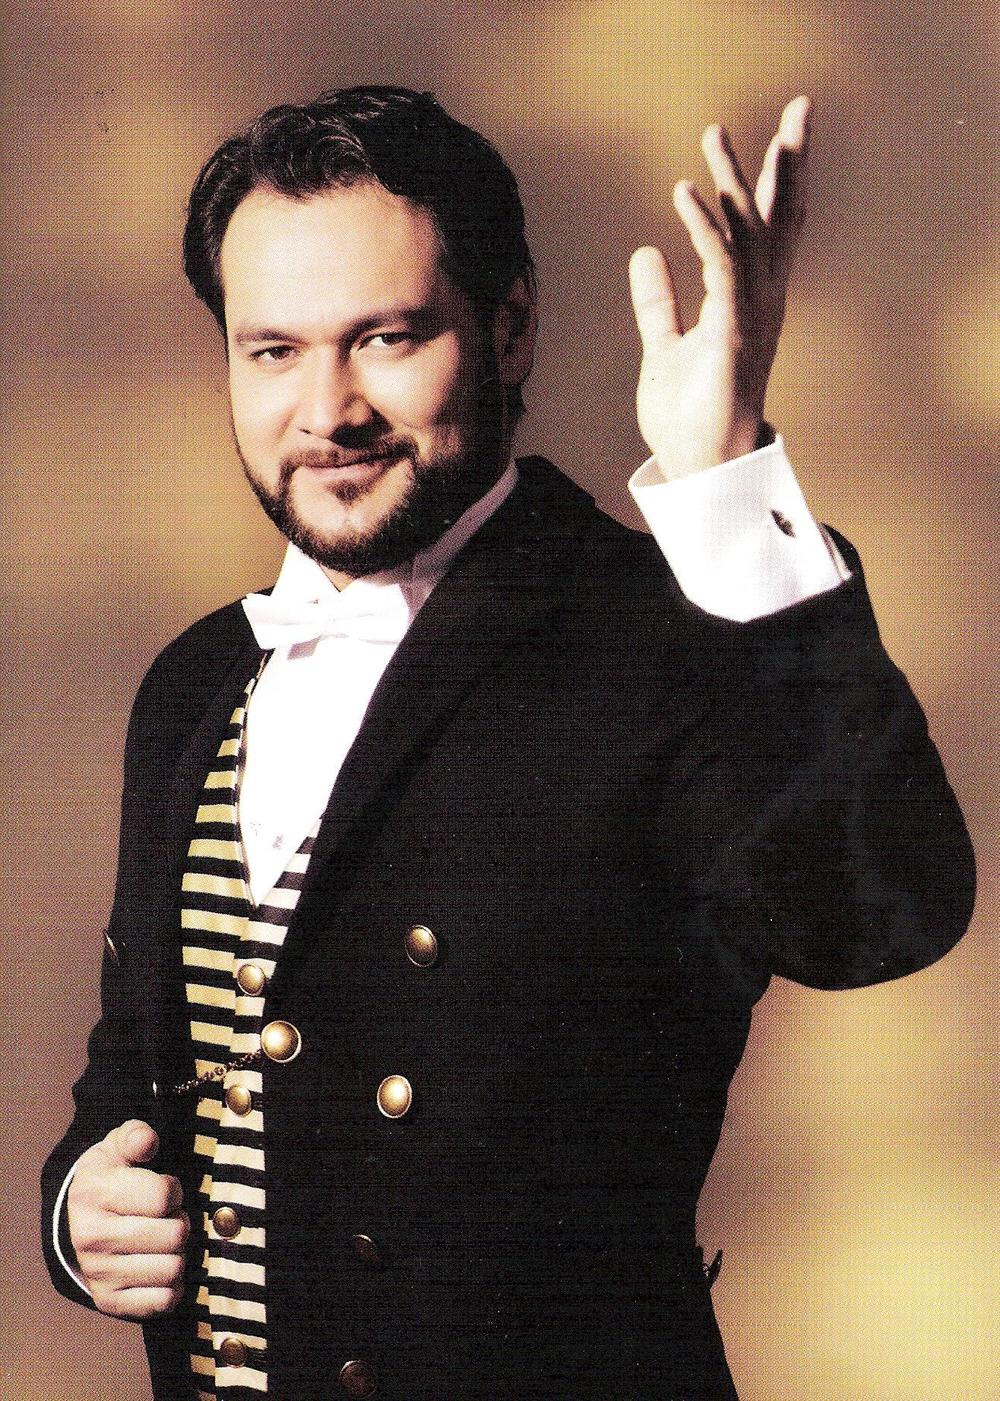 Ildar Abdrazakov as Figaro in the Met's new production